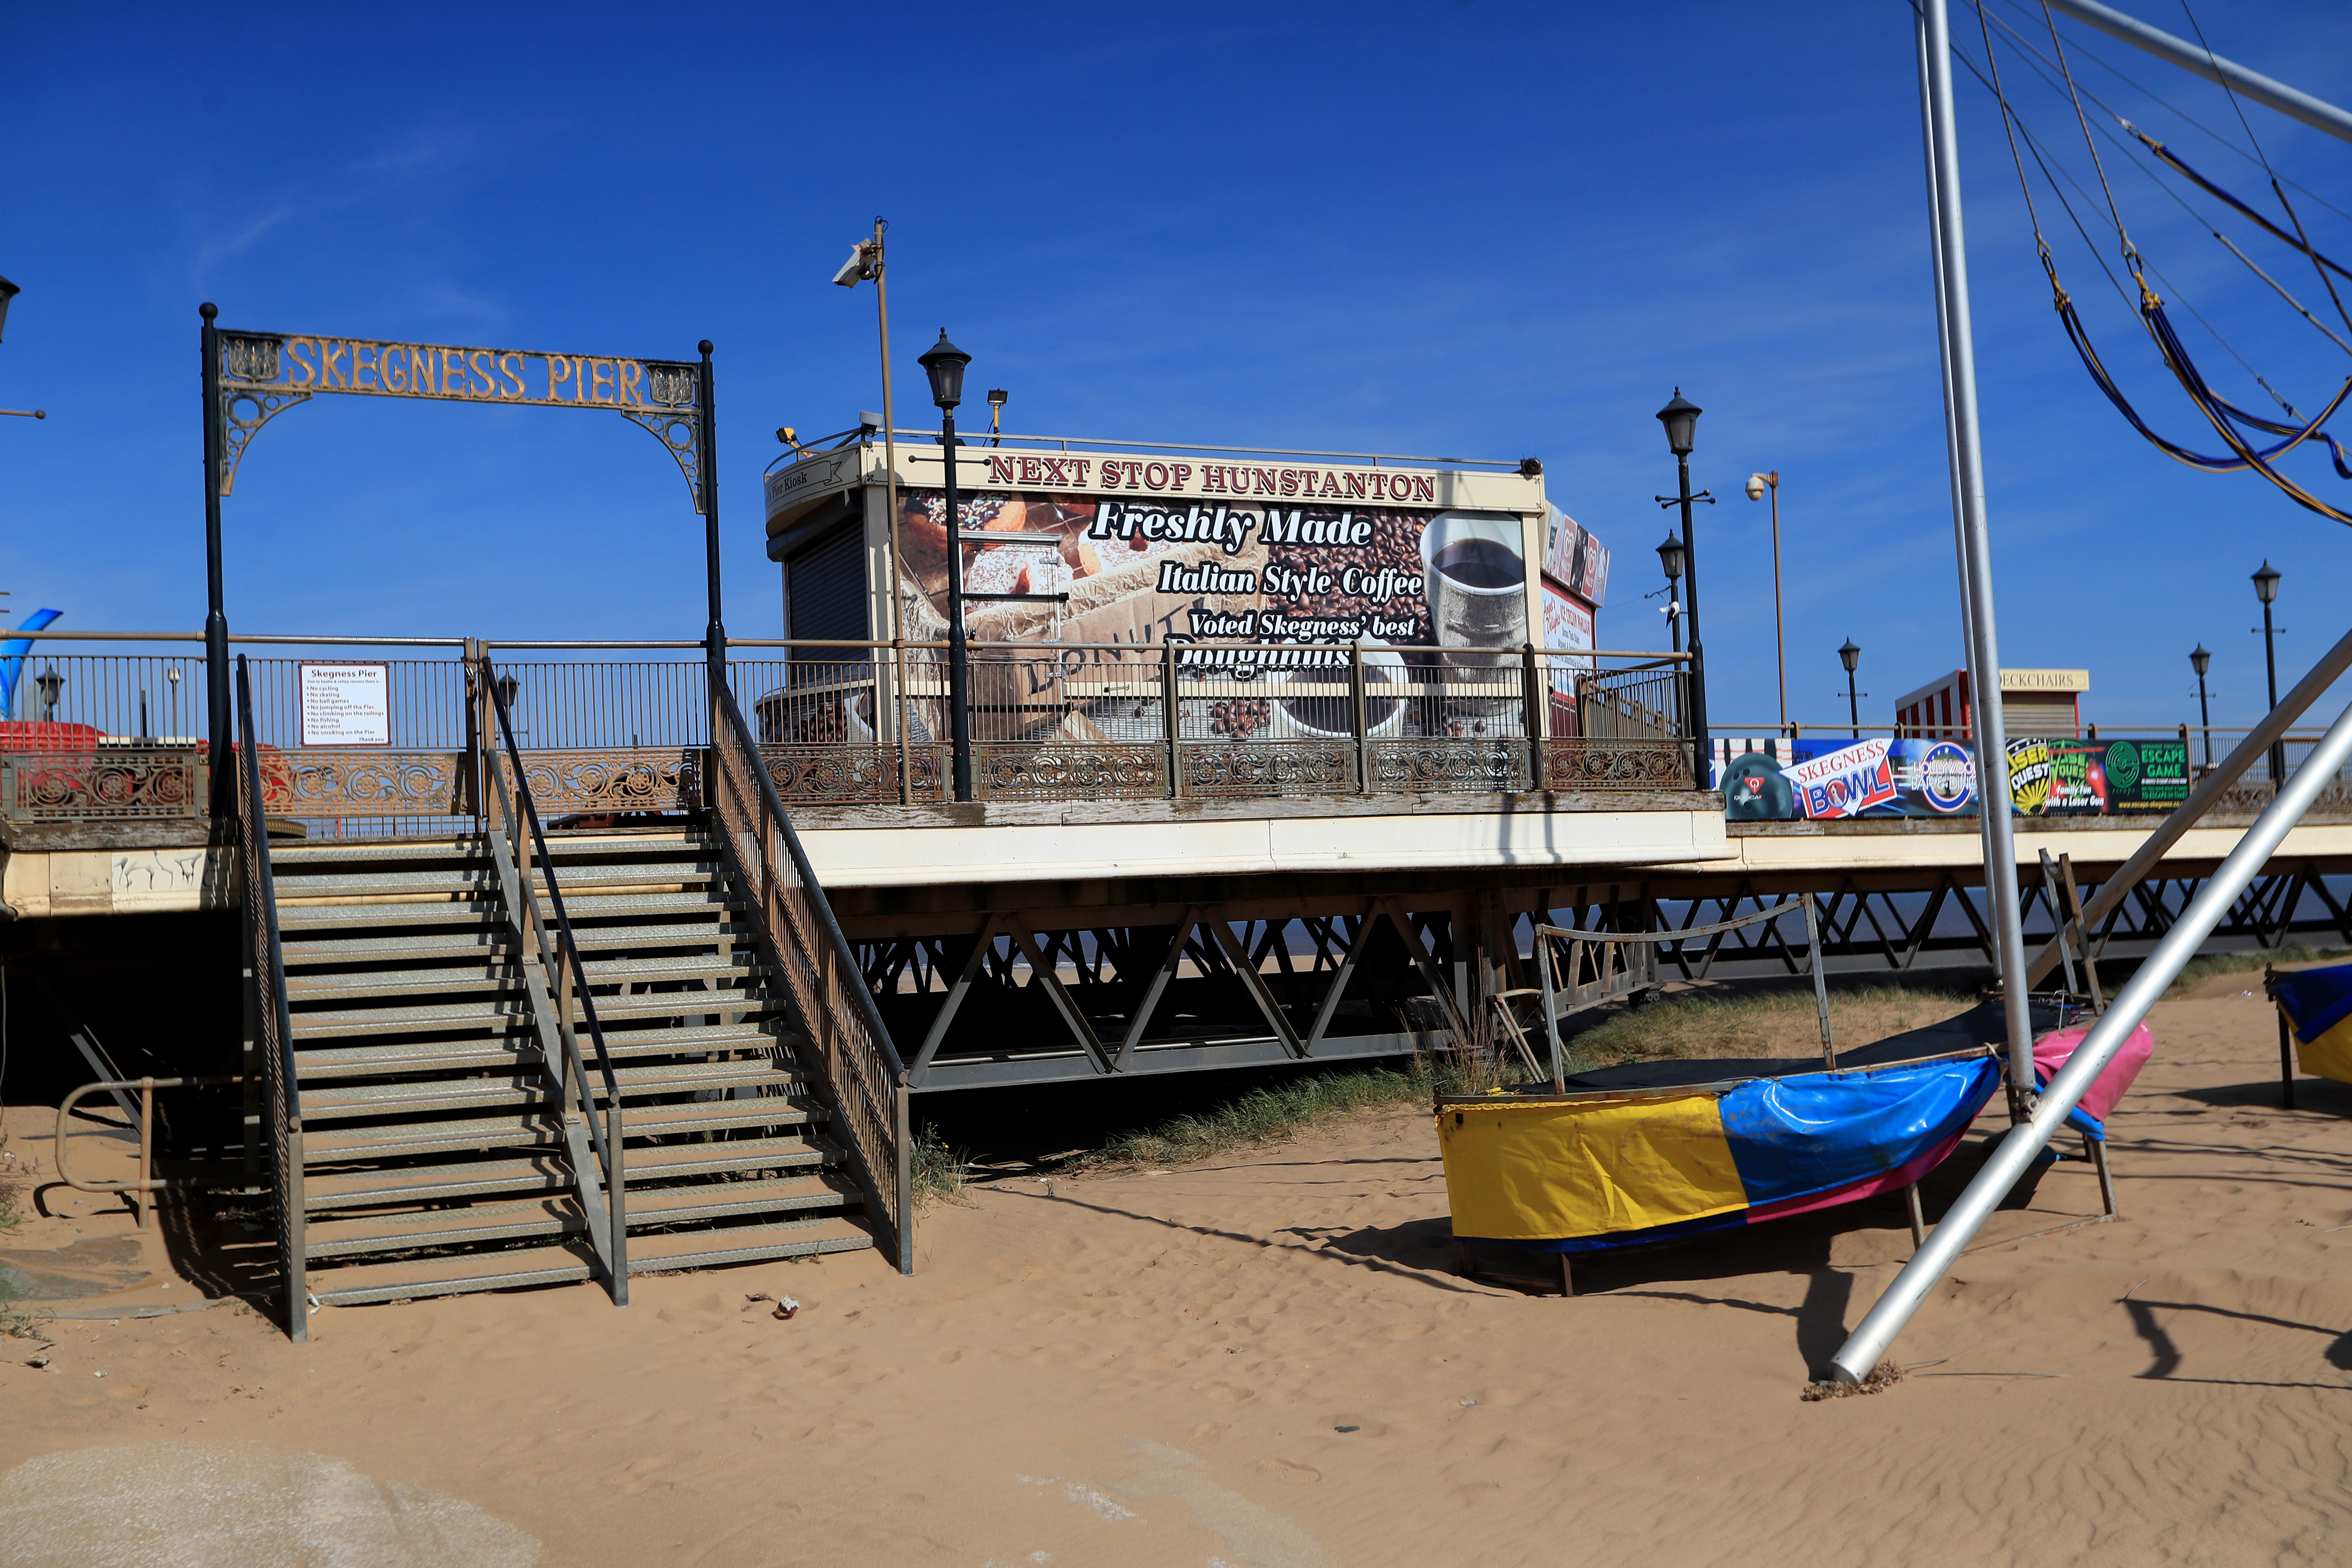 Skegness pier is closed, the day after Prime Minister Boris Johnson put the UK in lockdown to help curb the spread of the coronavirus.